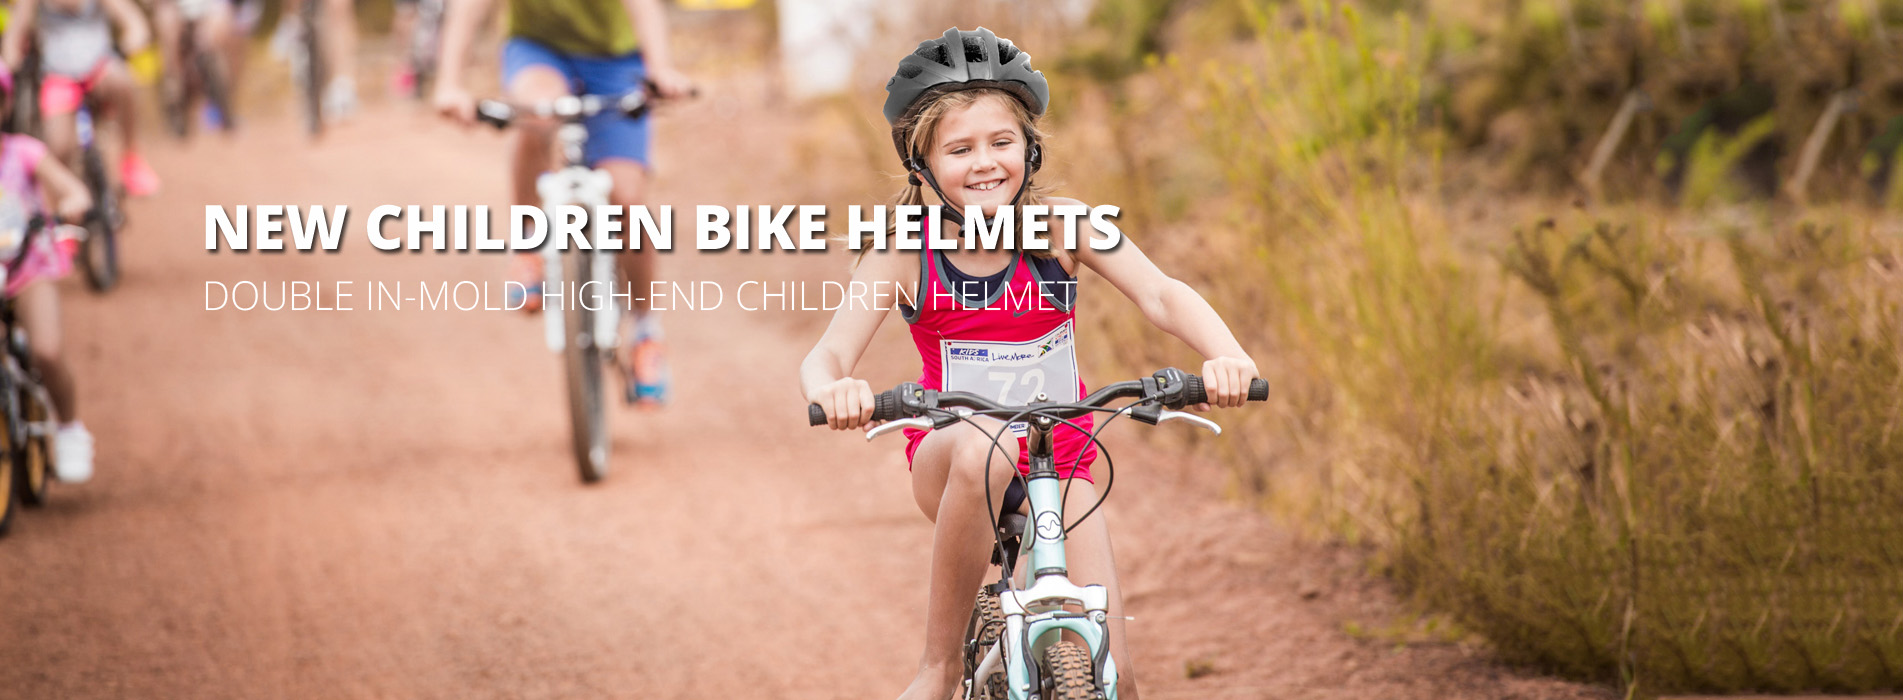 Children's bike helmet c08 banner